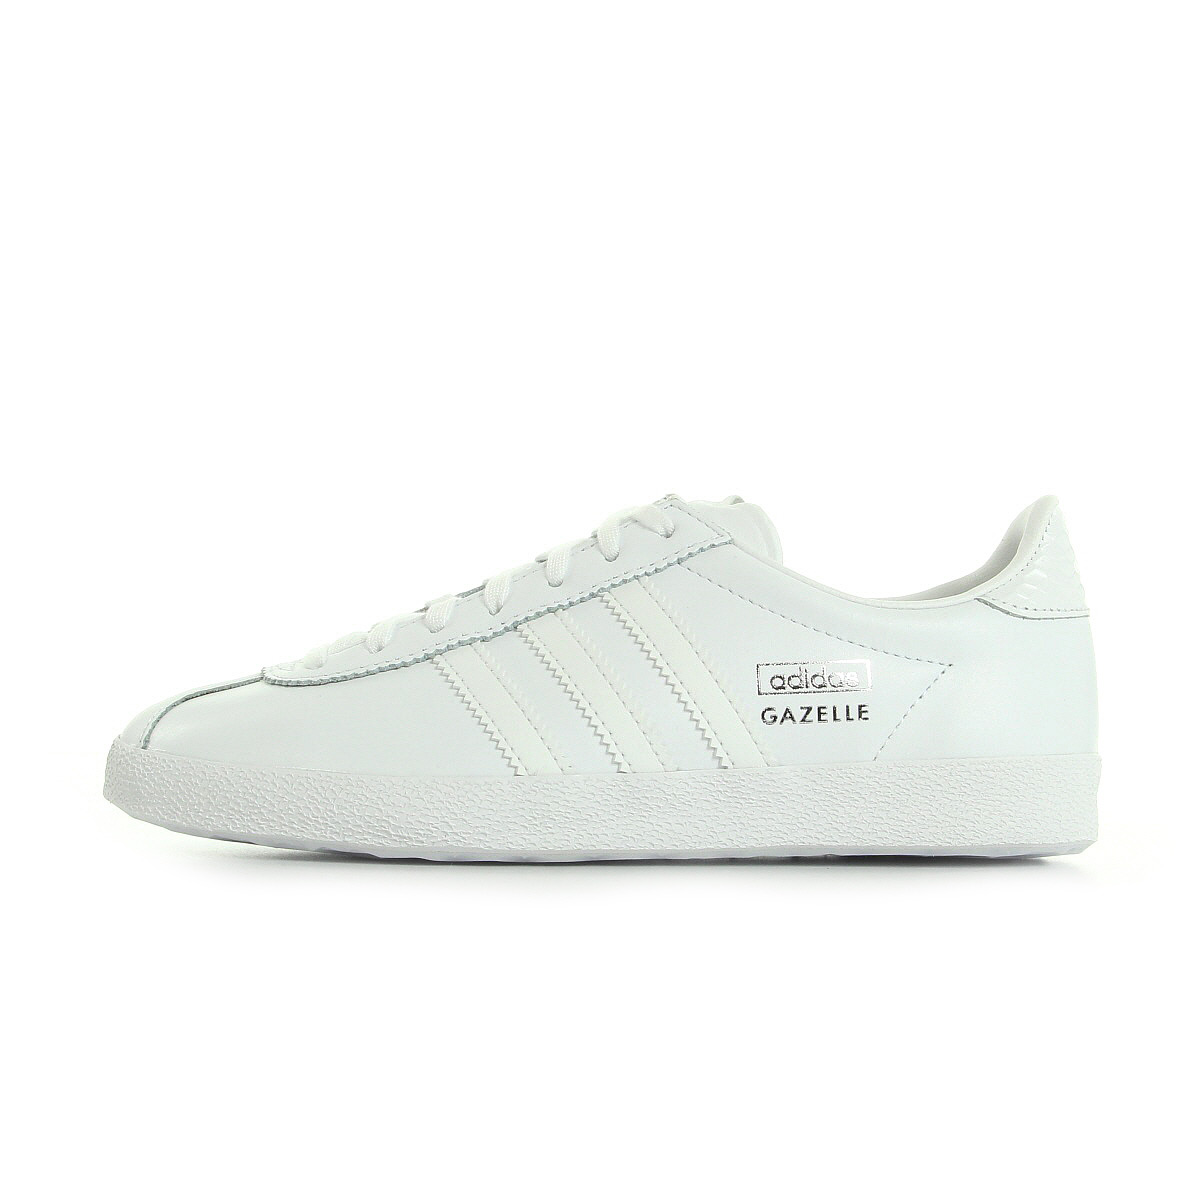 chaussures baskets adidas femme gazelle og w taille blanc blanche cuir lacets ebay. Black Bedroom Furniture Sets. Home Design Ideas